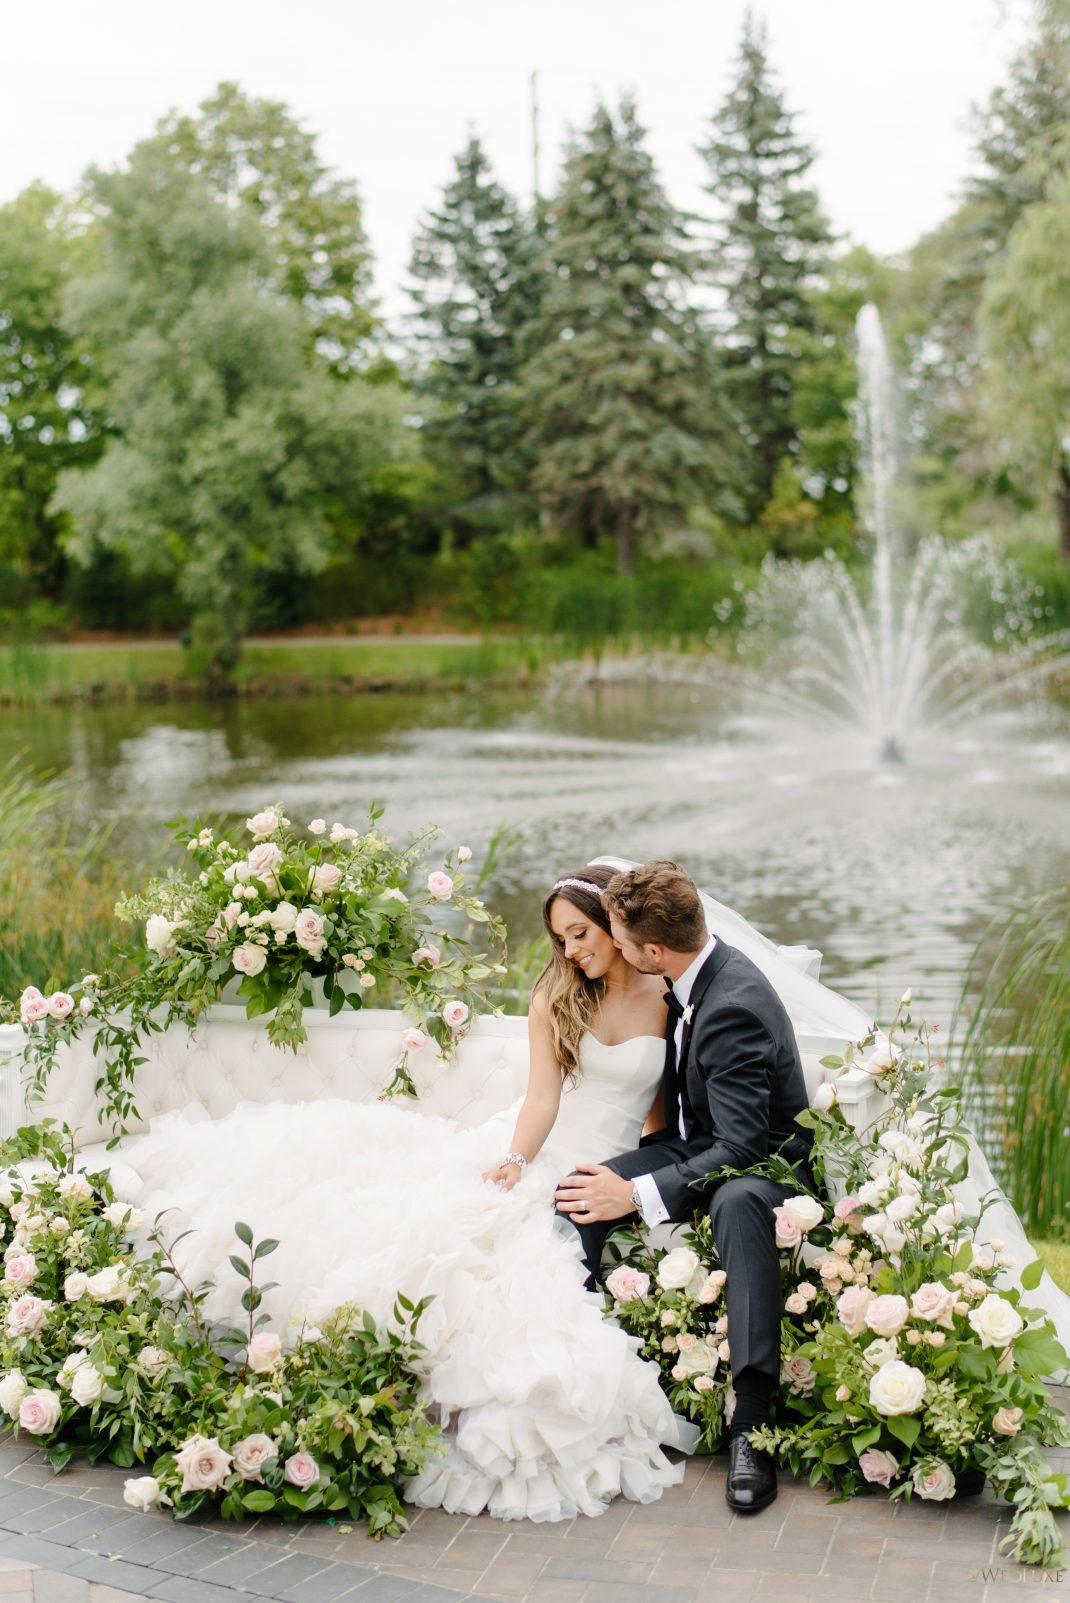 Newlyweds photoshoot by the pond at the Arlington Estate